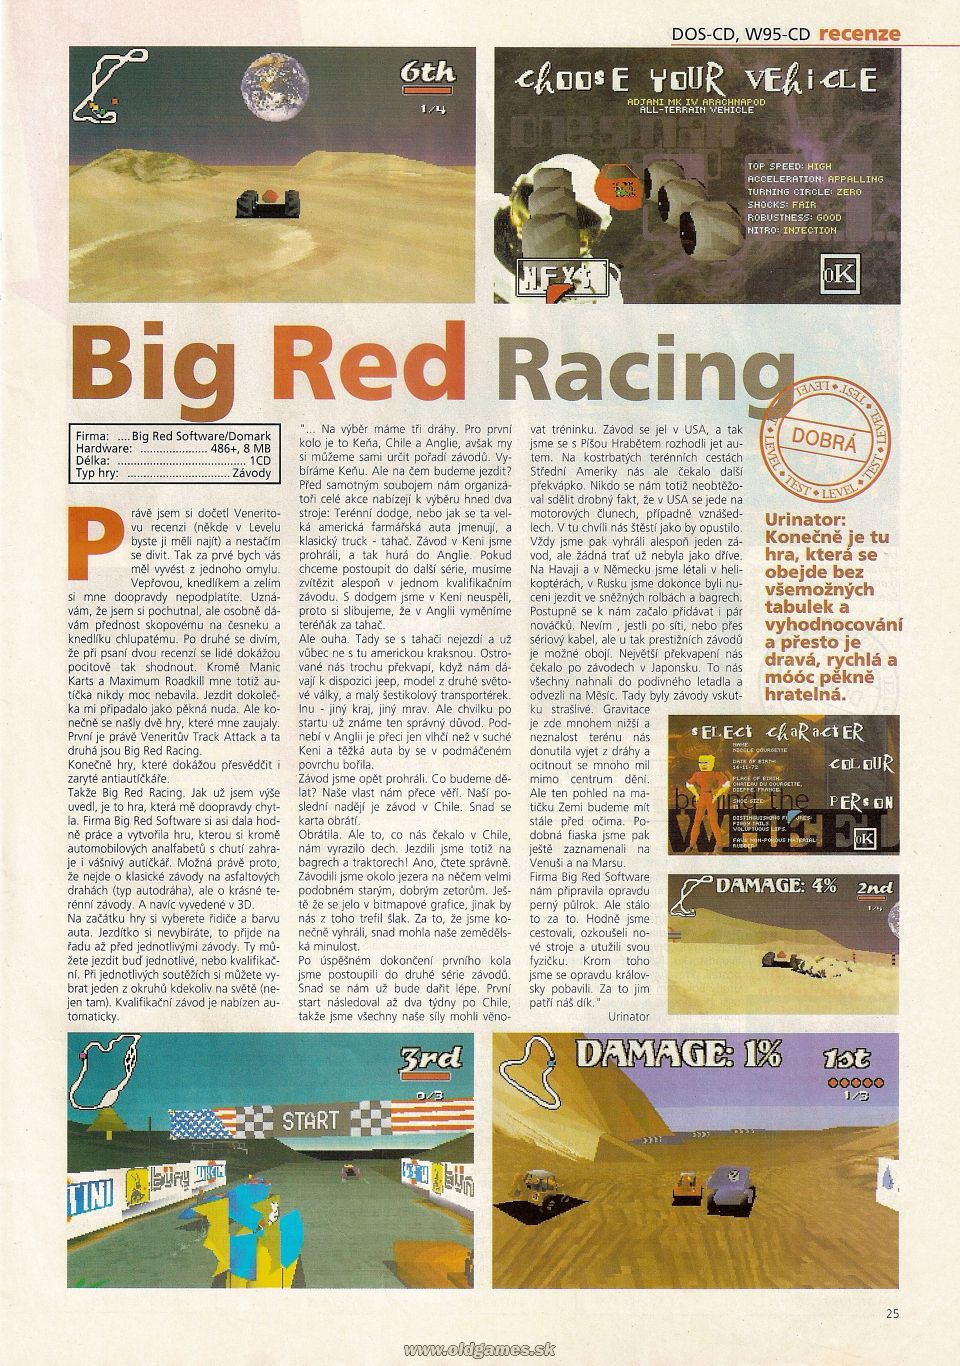 Big red racing level 16 5 96 page 16 for Big red racing